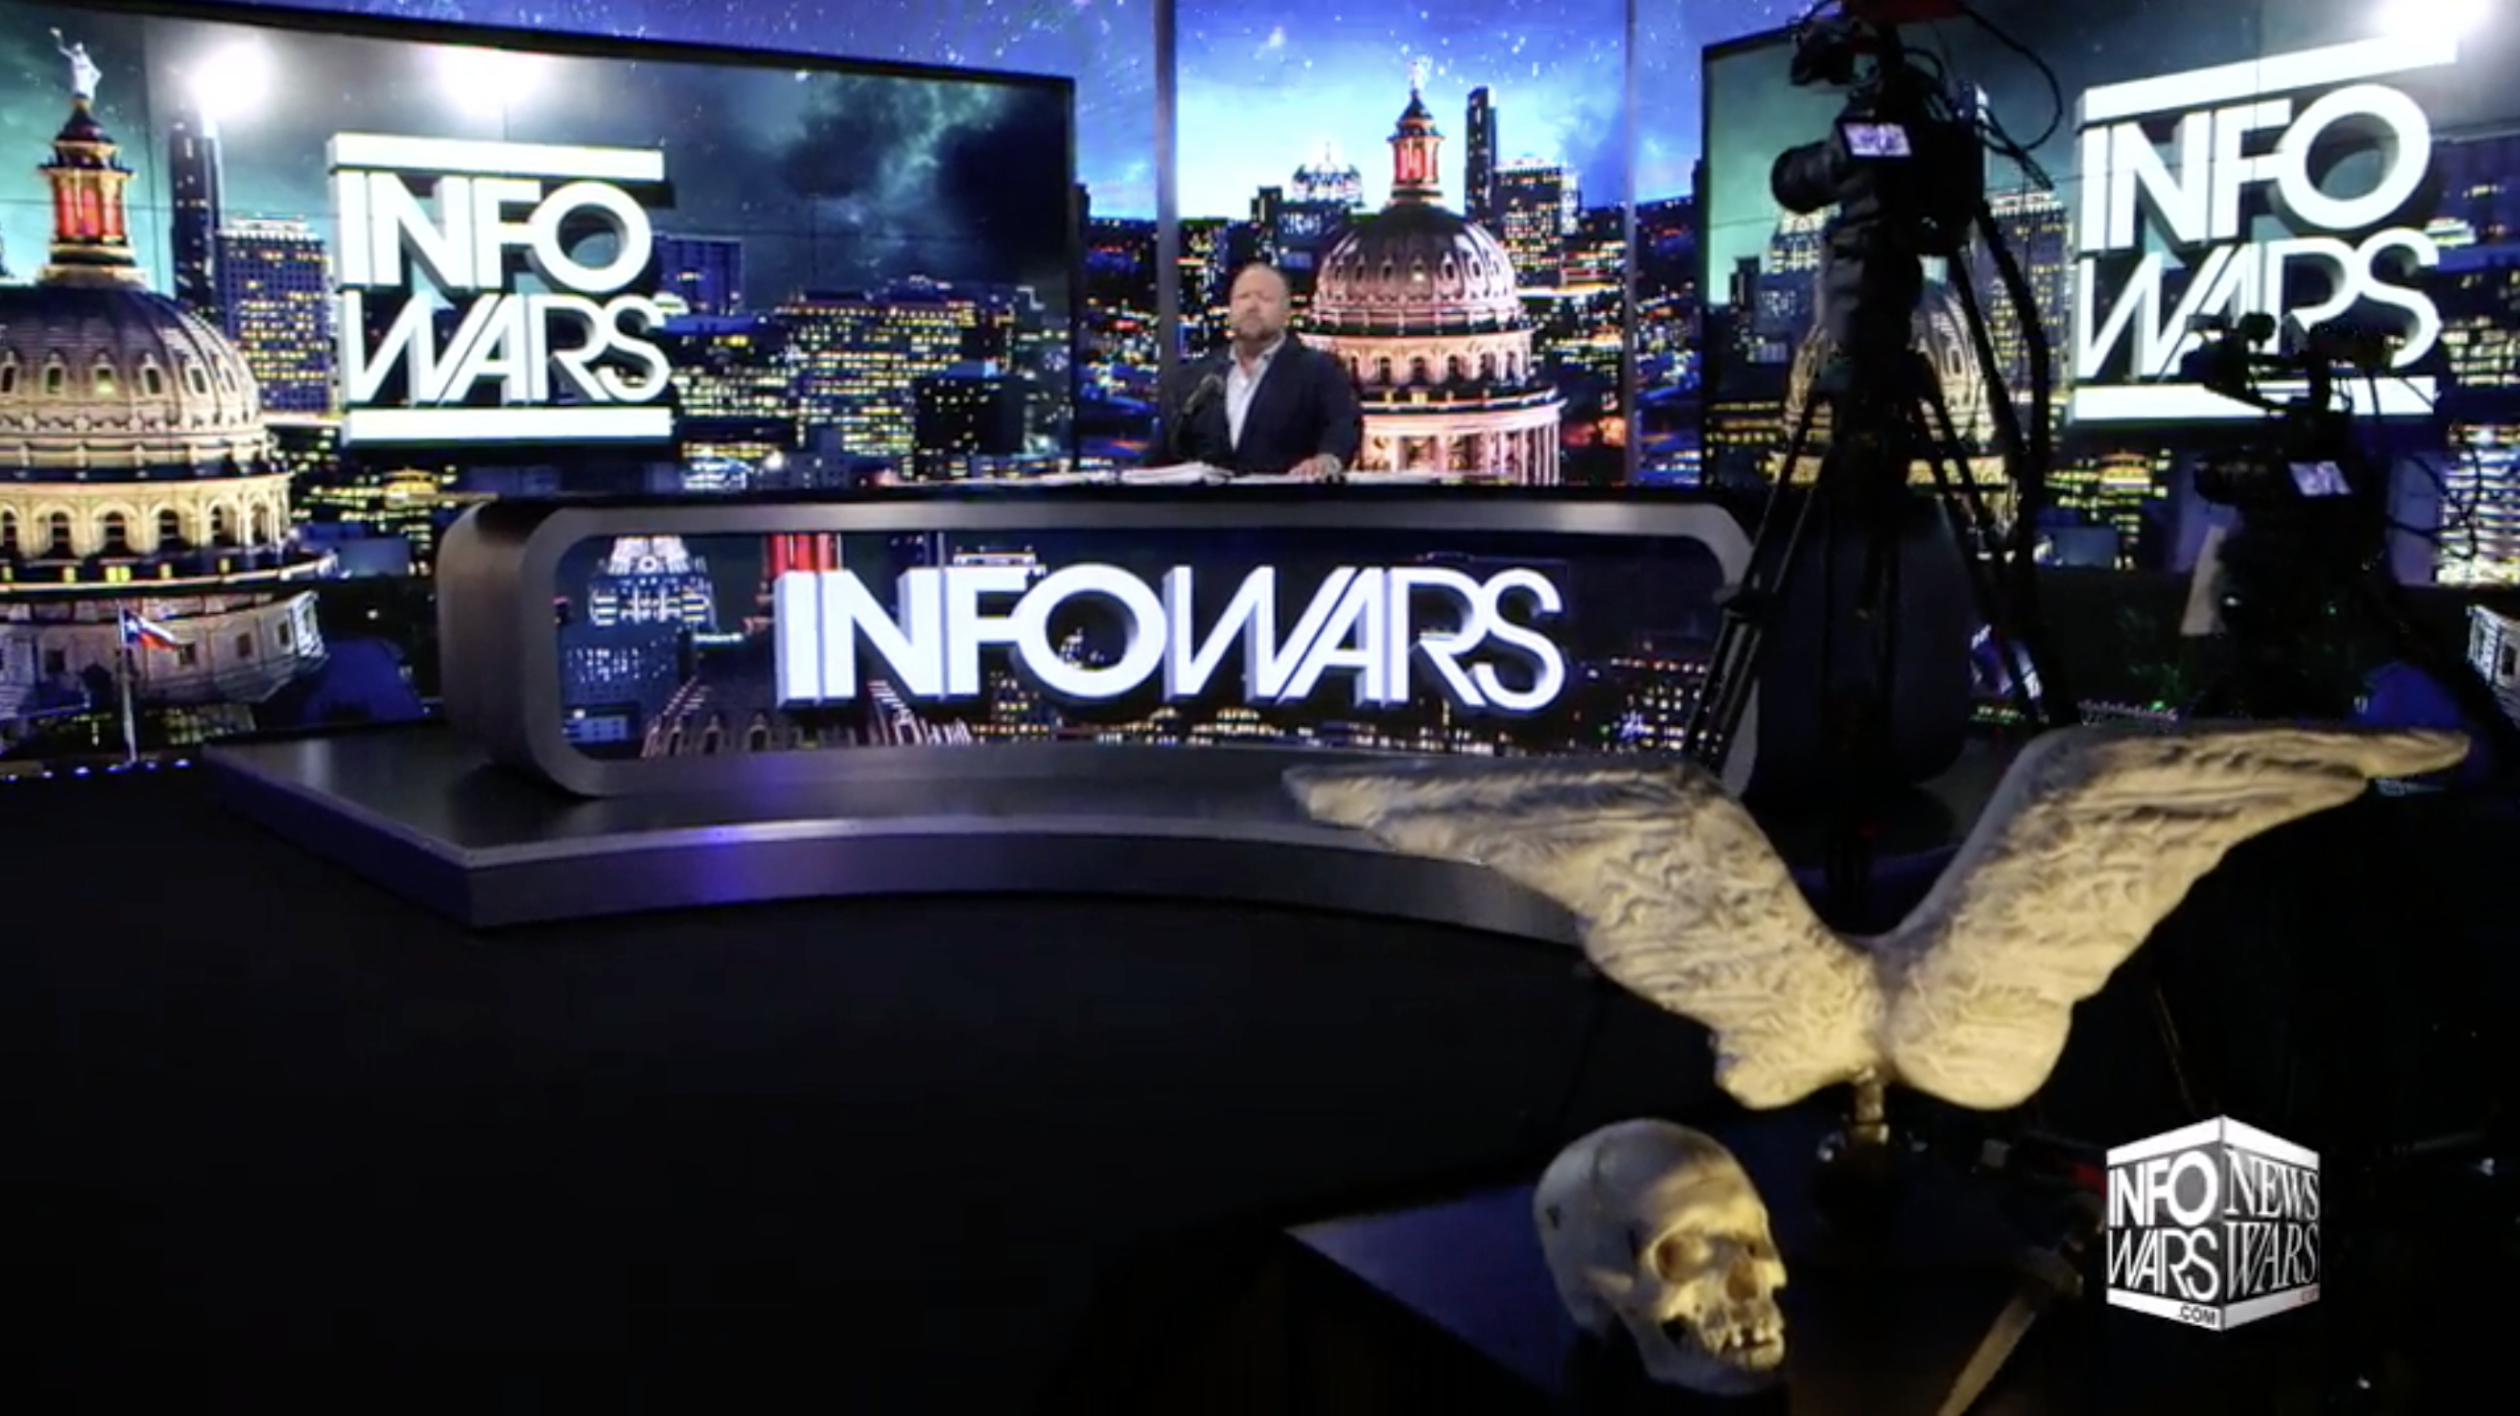 Alex Jones Infowars NewsWars Studio EXZM Angel Wings Skull August 3rd 2020